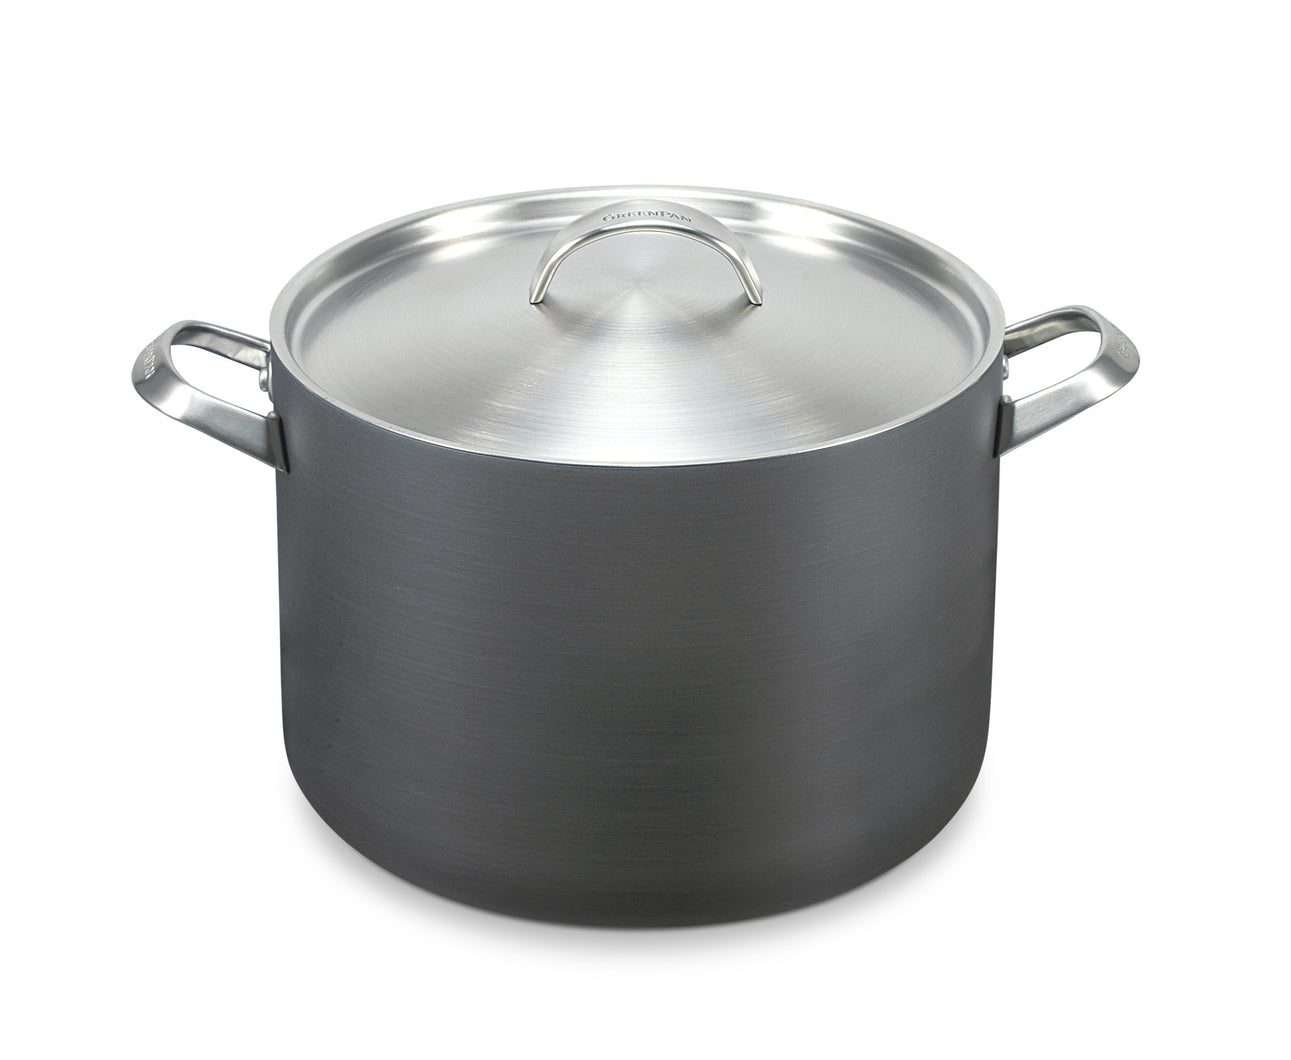 GreenPan Paris 8QT Stock Pot